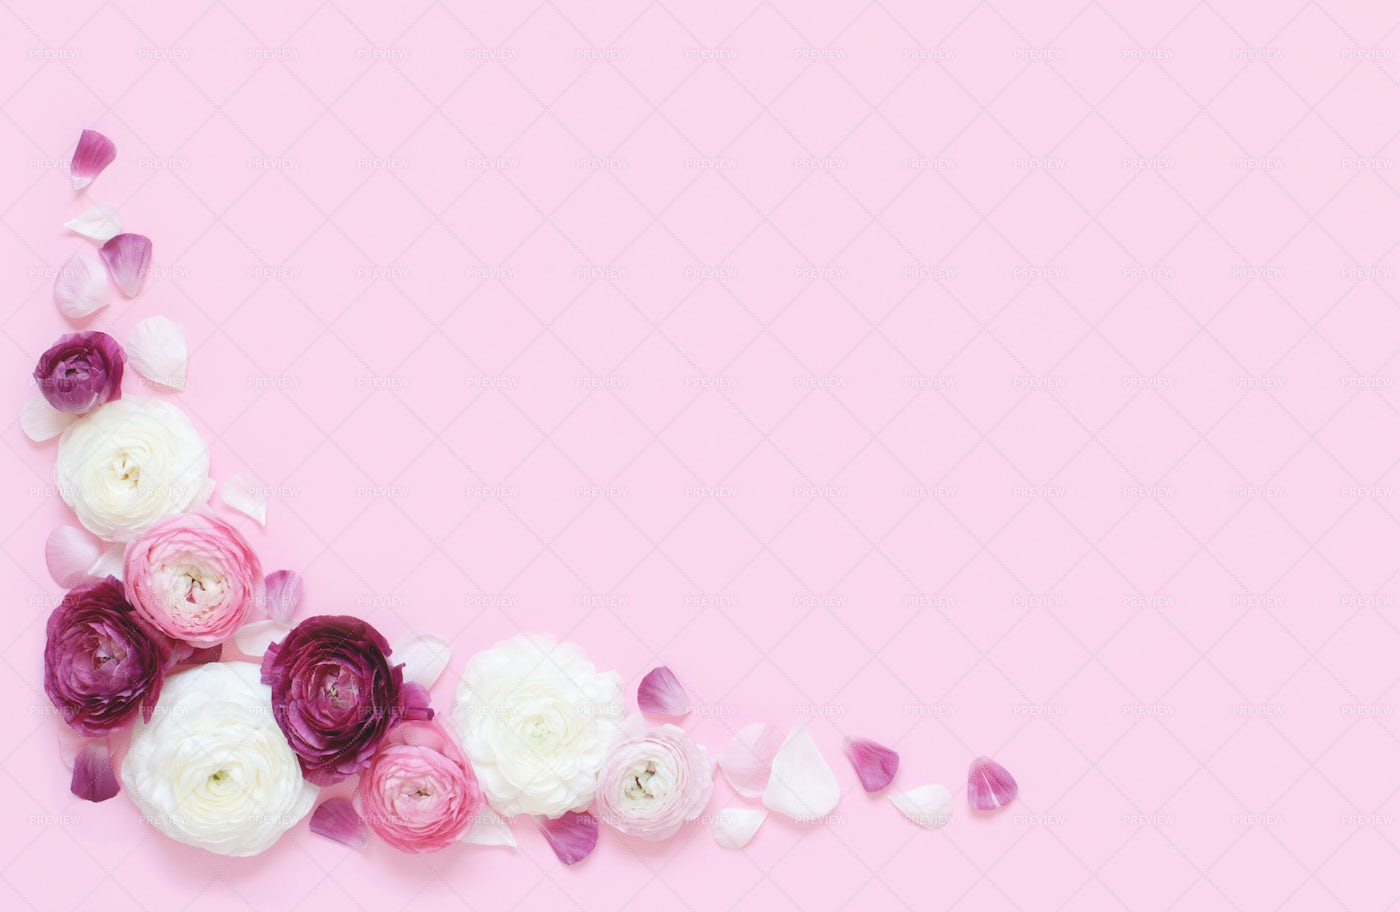 Pink And White Flowers Background: Stock Photos